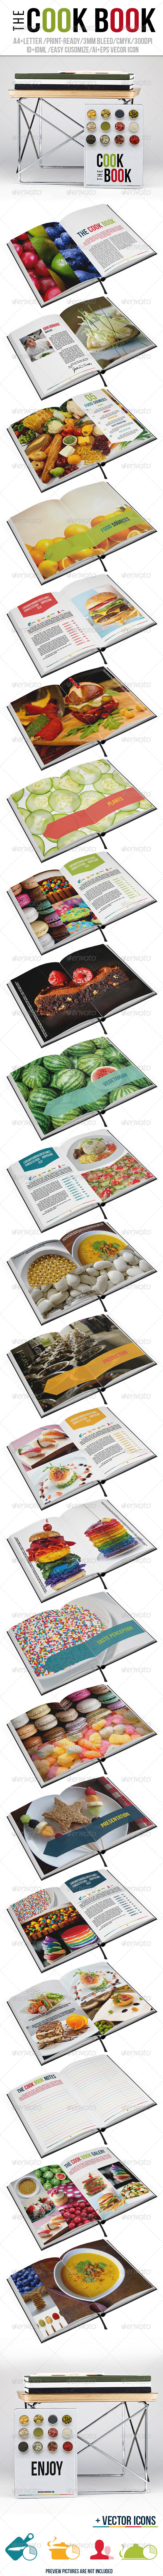 GraphicRiver The Cook Book 6436645